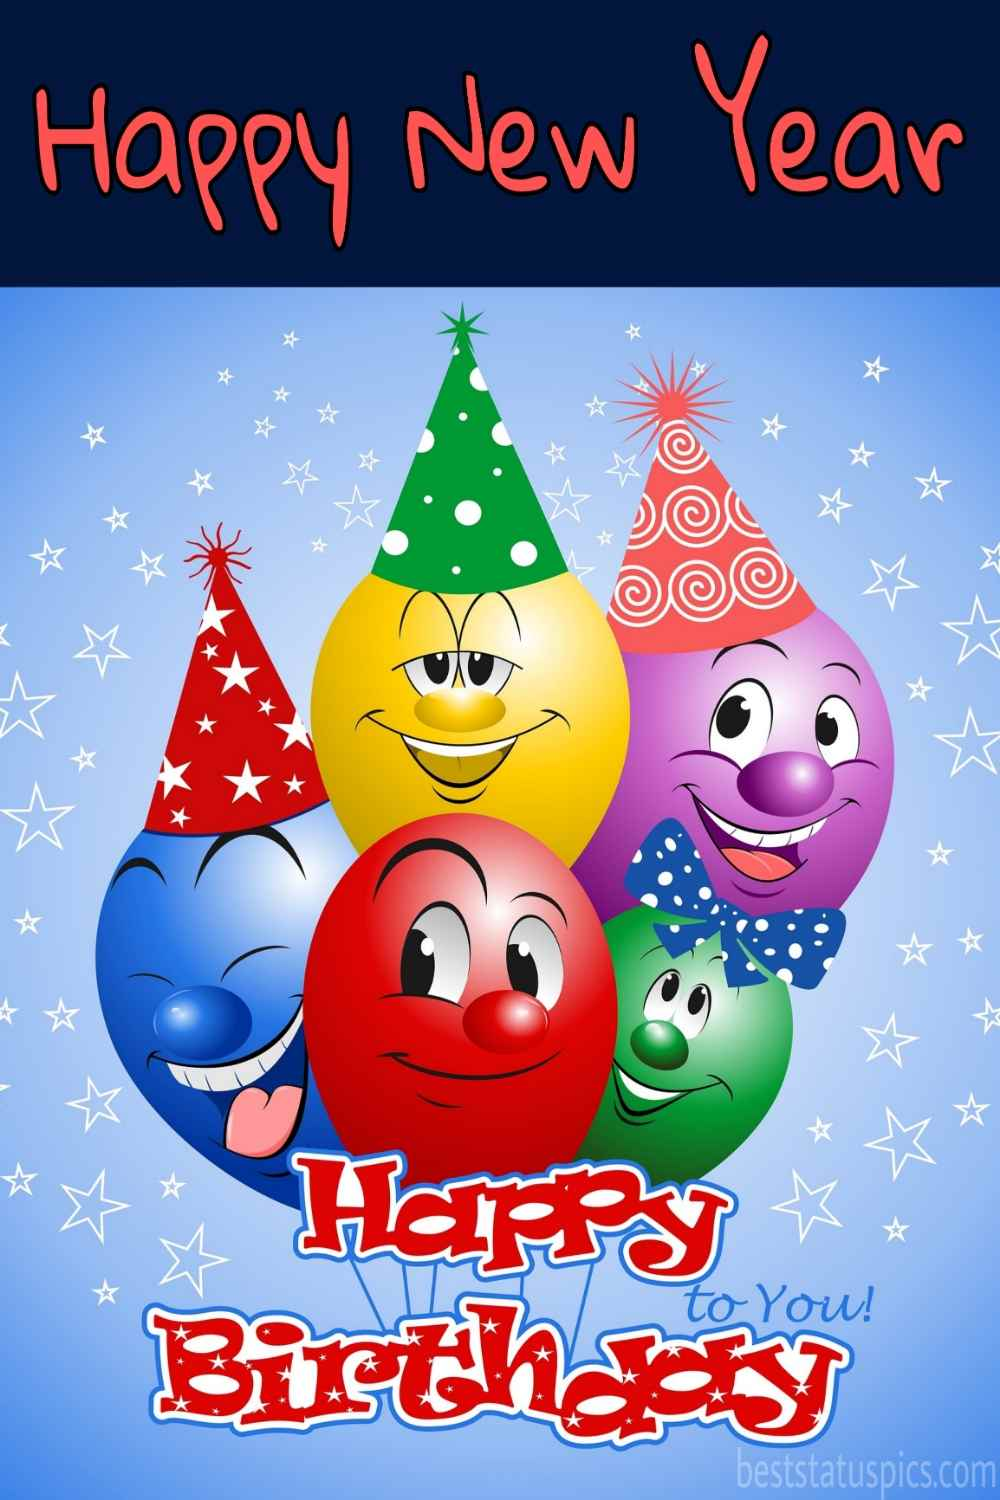 Happy Birthday and Happy new year 2022 wishes cards with funny balloons for friends, sister and brother